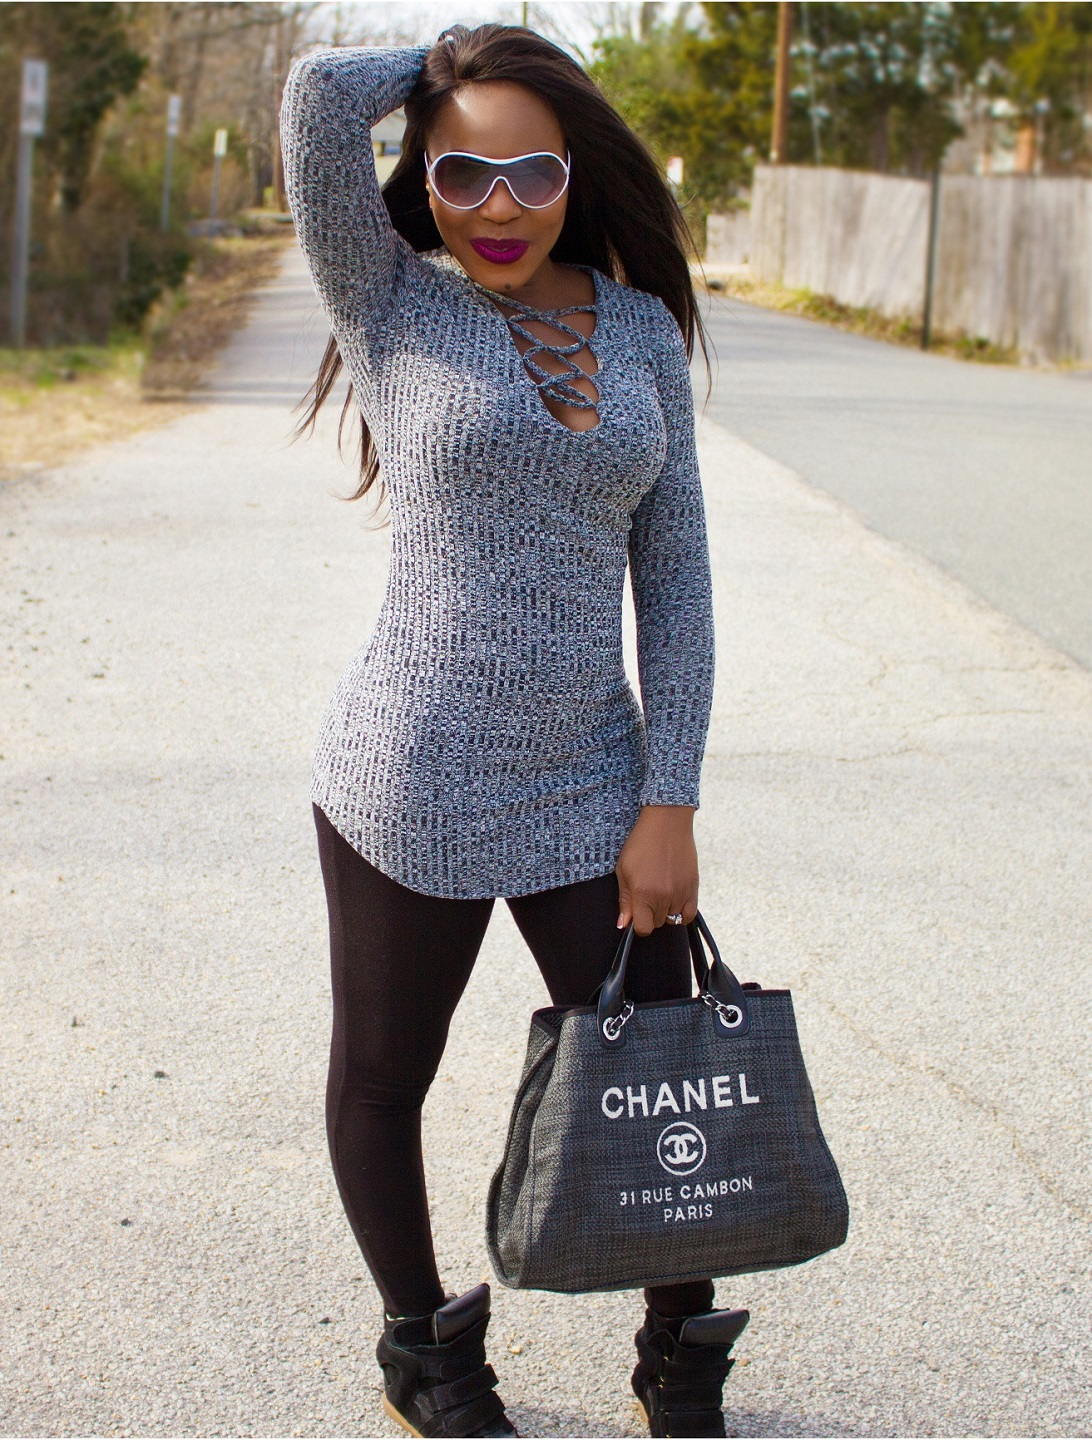 Chanel Deauville Tote Bag in grey